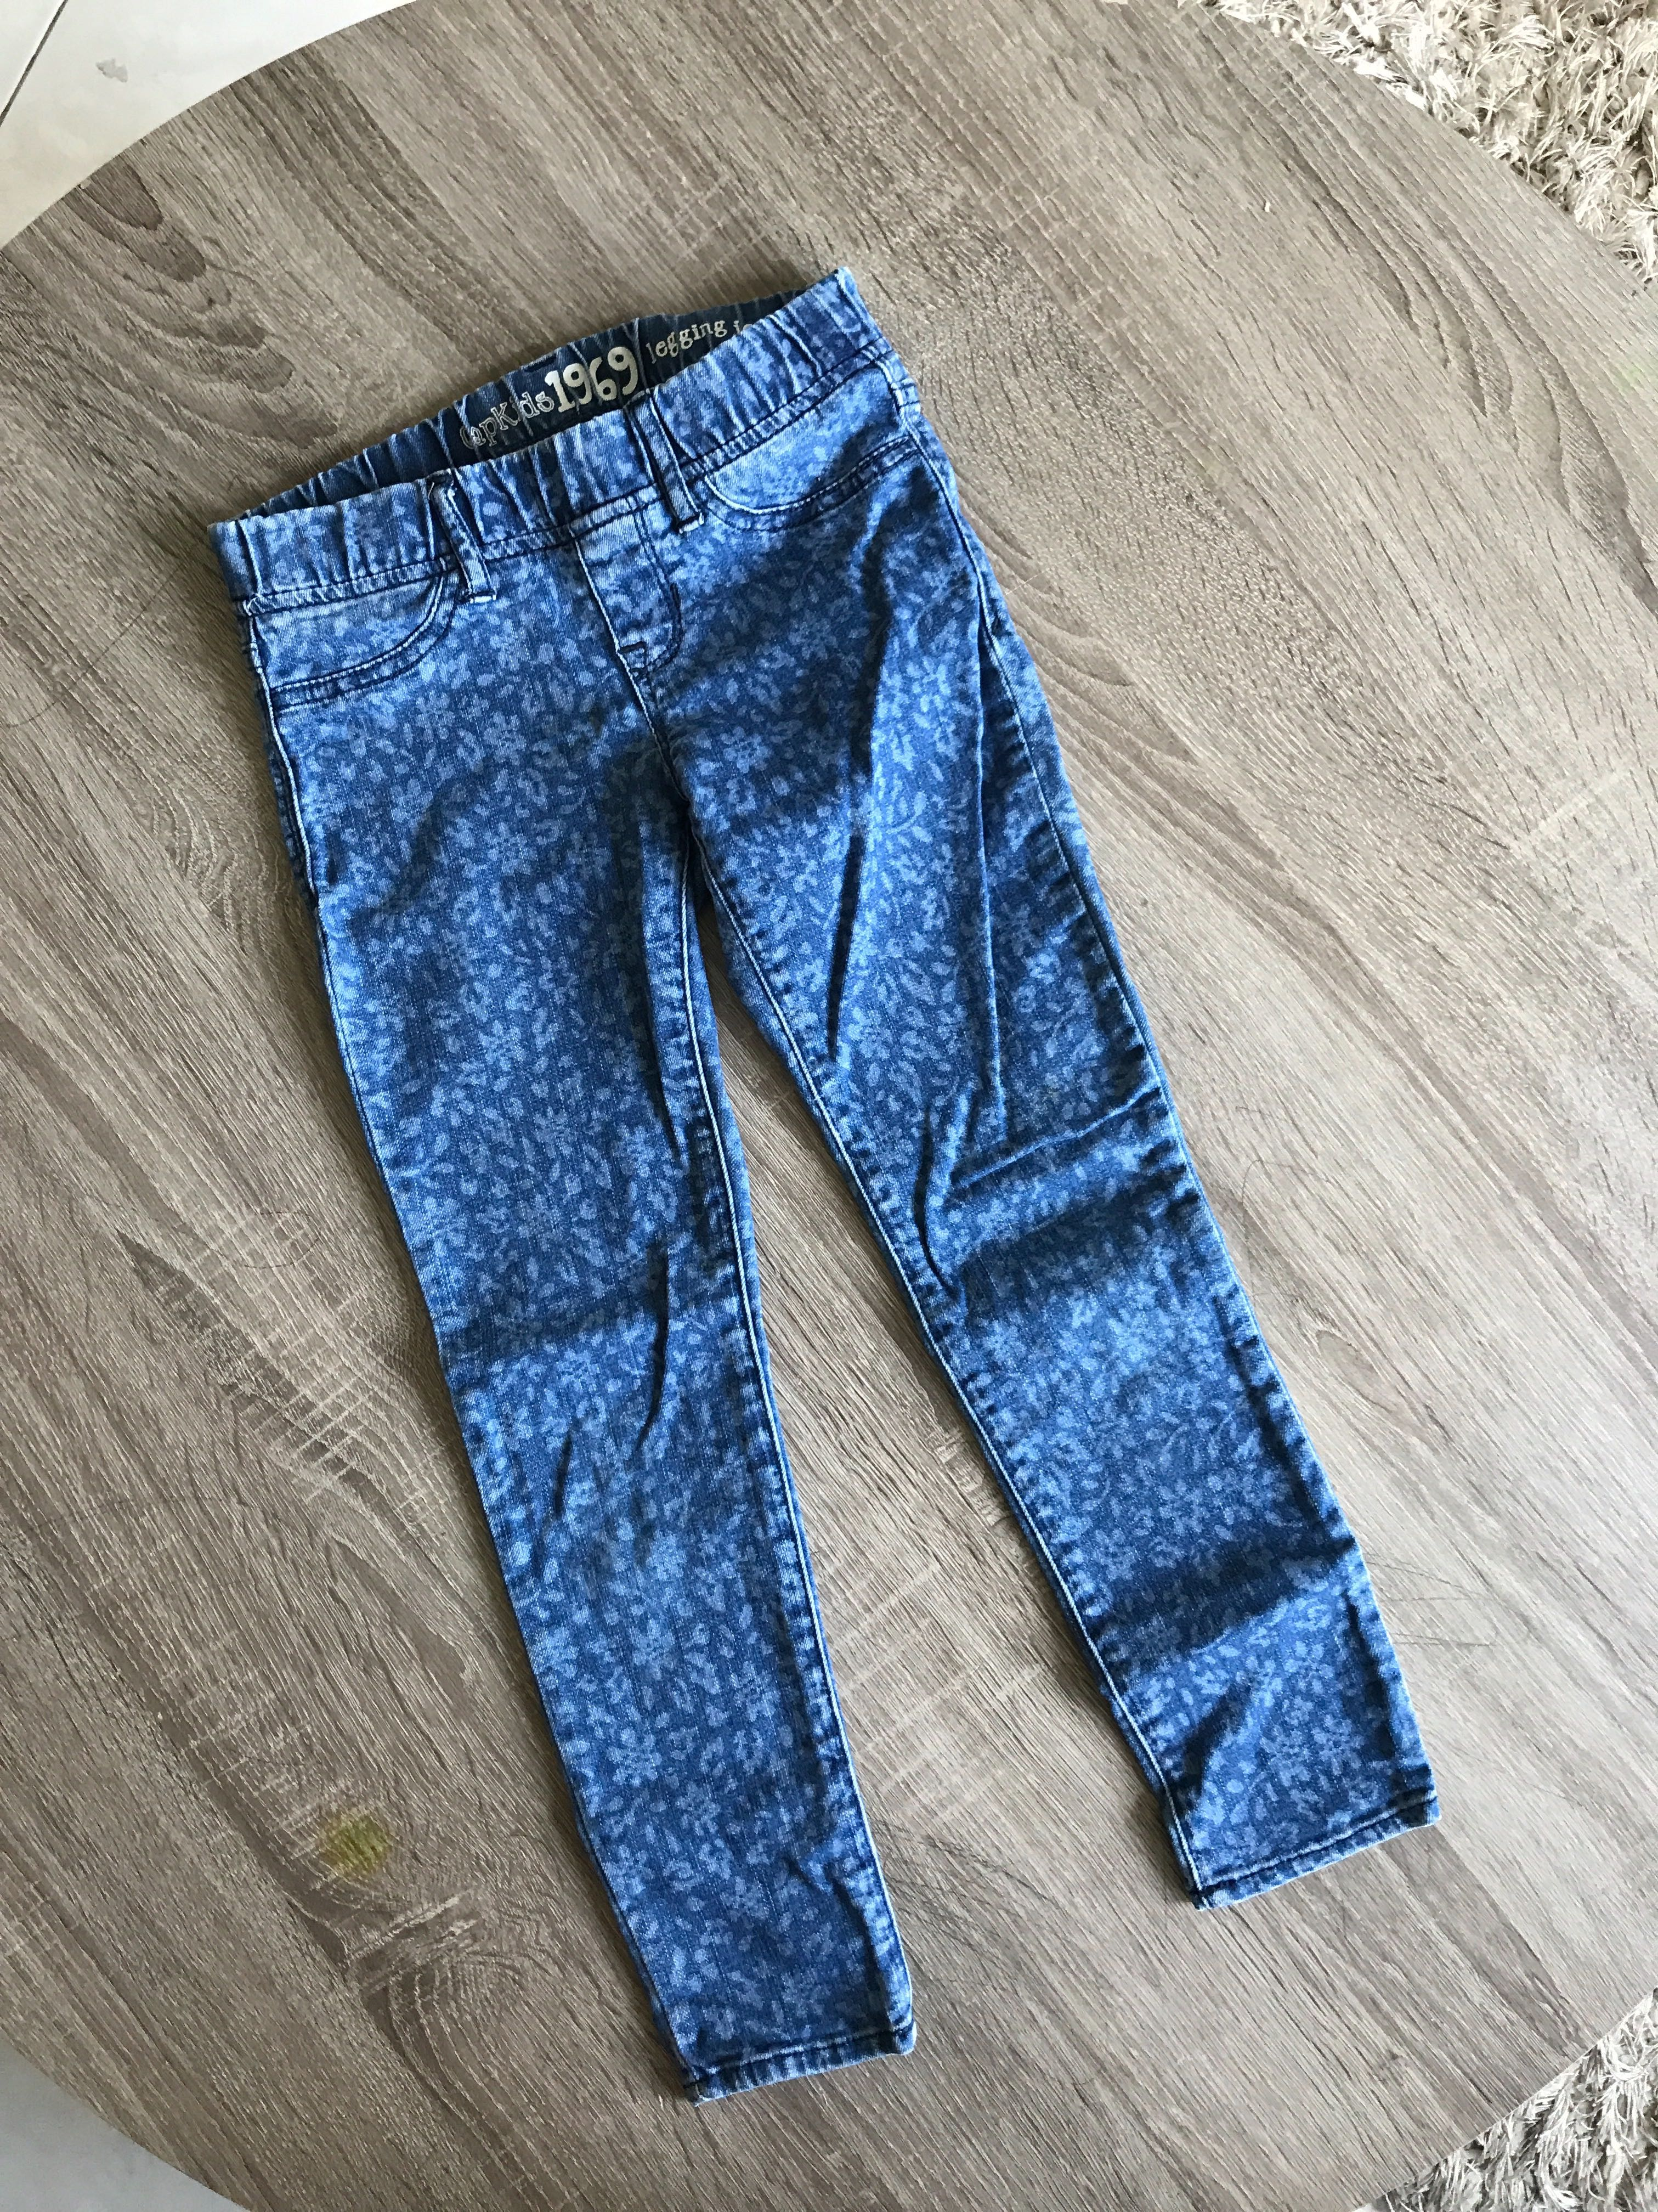 57399a1ea BABY GAP KIDS LEGGING JEANS, Babies & Kids, Girls' Apparel on Carousell